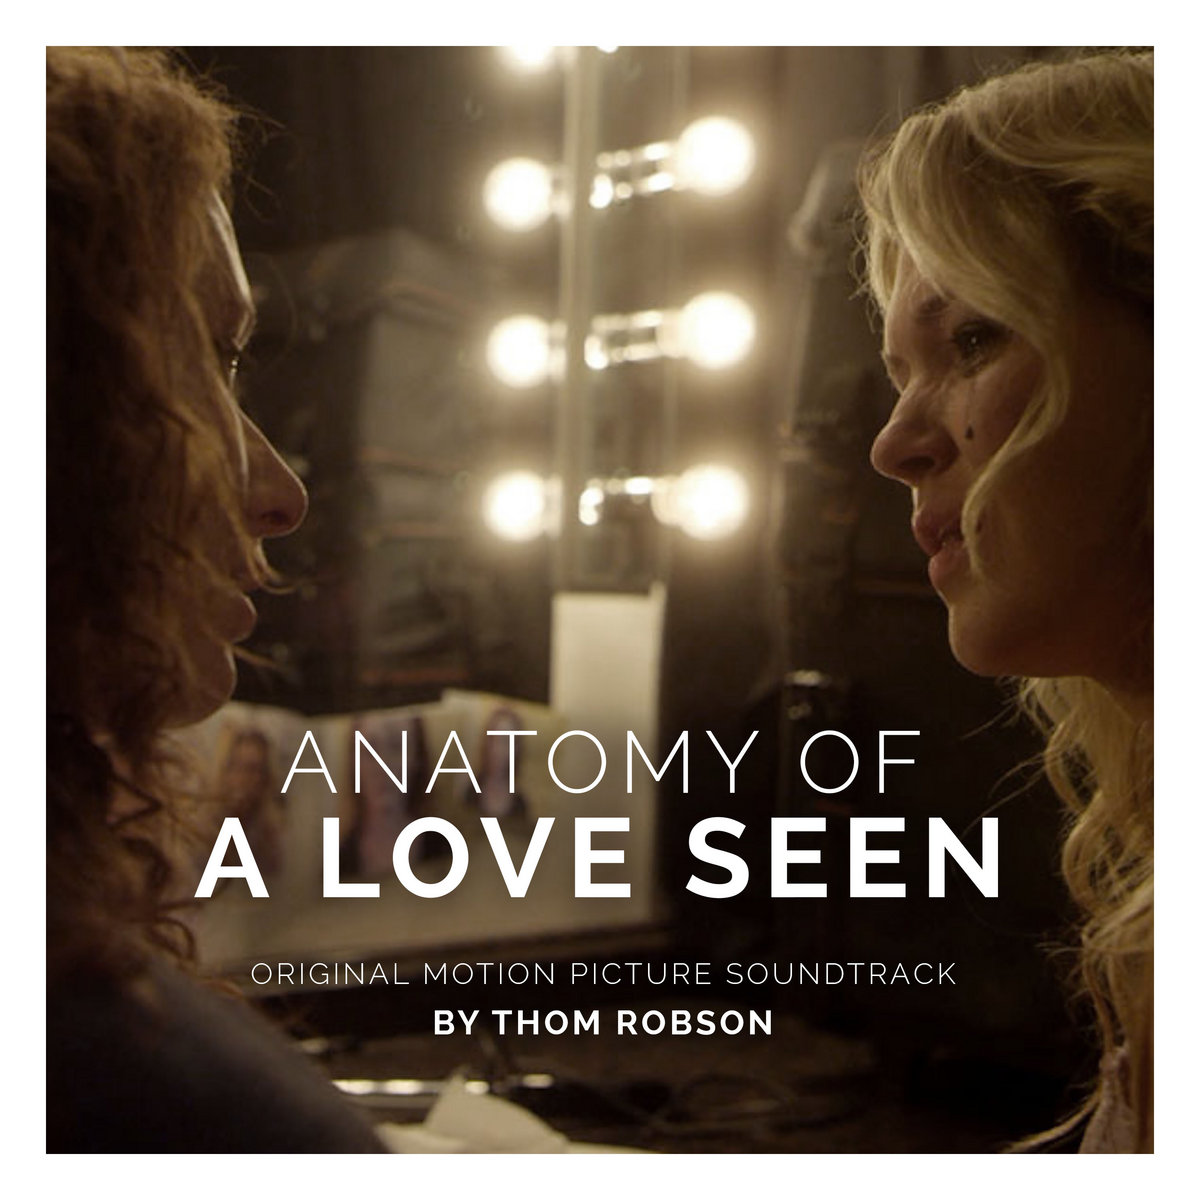 Anatomy Of A Love Seen En Español anatomy of a love seen (original motion picture soundtrack